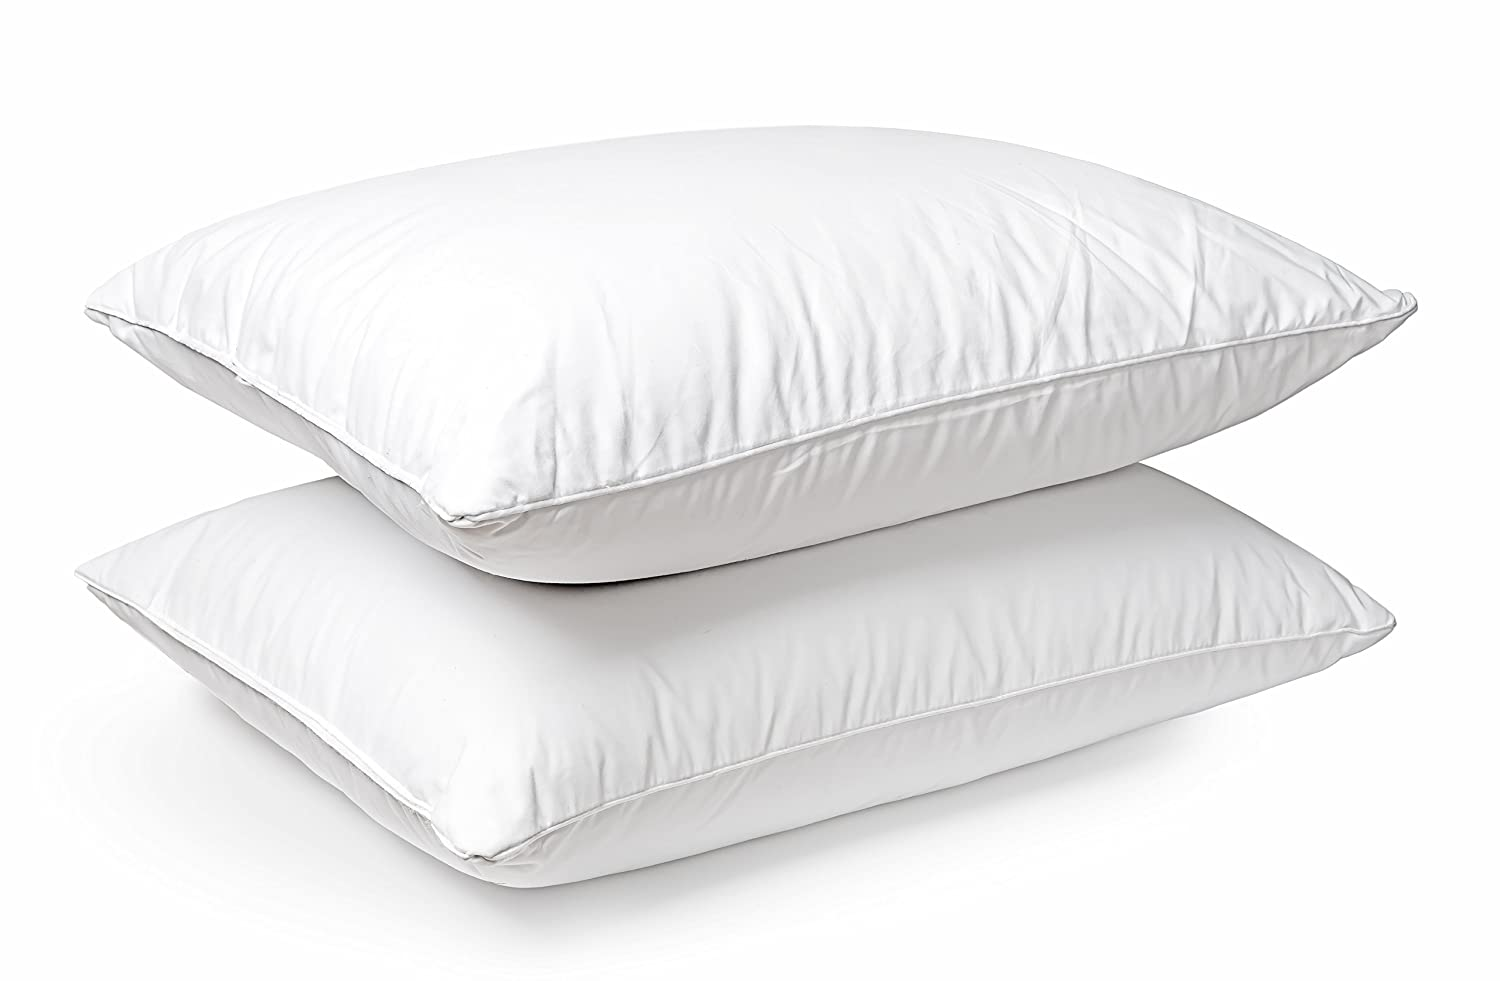 Sleep Factory Premium Down Feather Pillow Black Friday Deal 2020